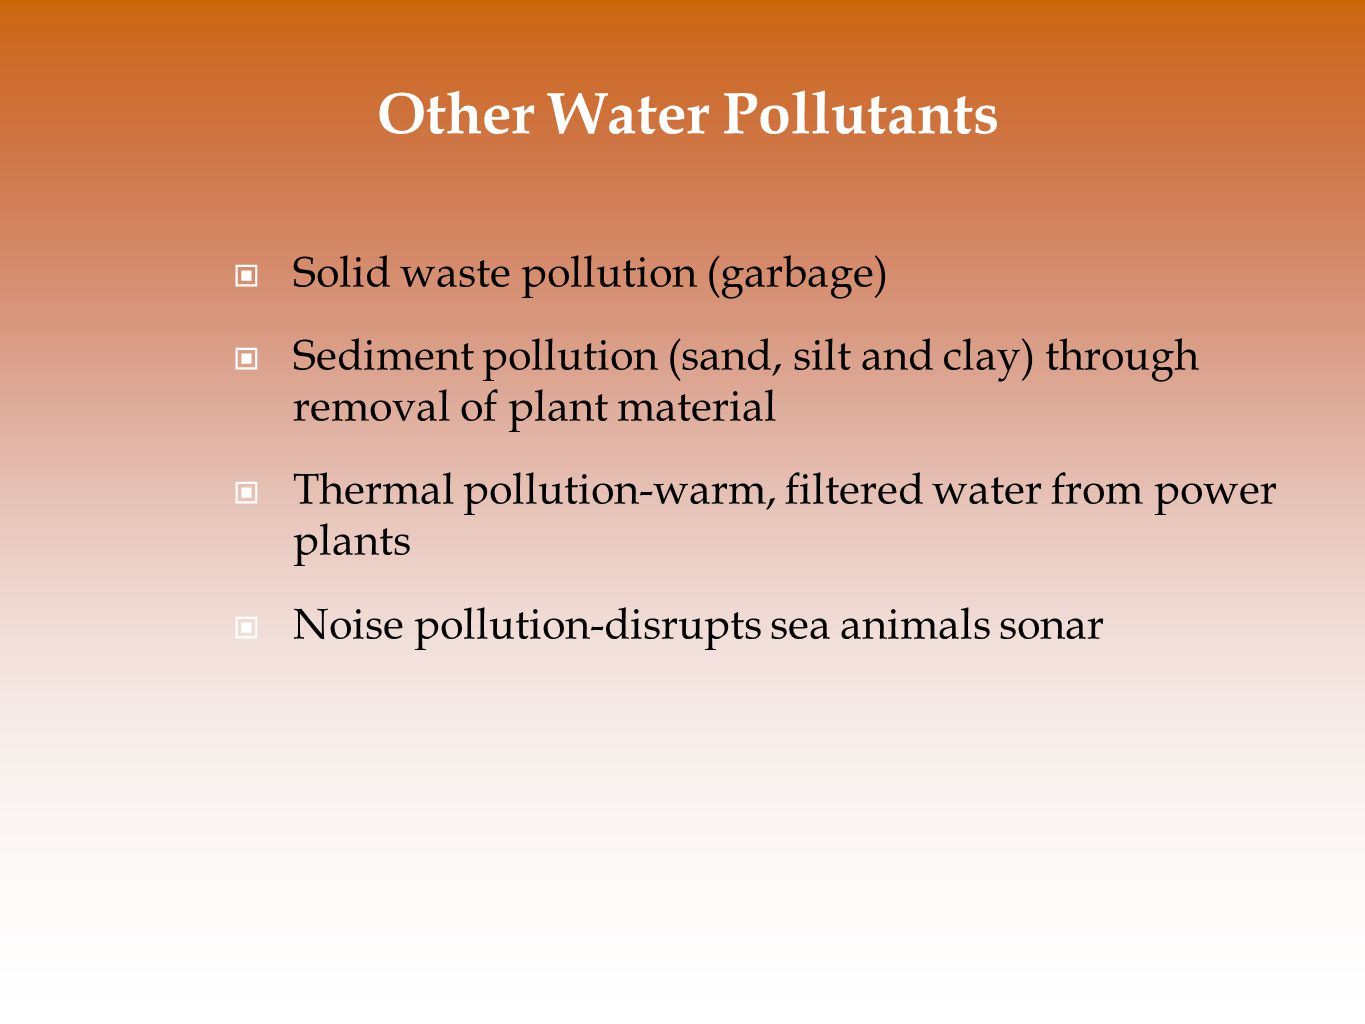 Other Water Pollutants Solid waste pollution (garbage) Sediment pollution (sand, silt and clay) through removal of plant material Thermal pollution-warm, filtered water from power plants Noise pollution-disrupts sea animals sonar